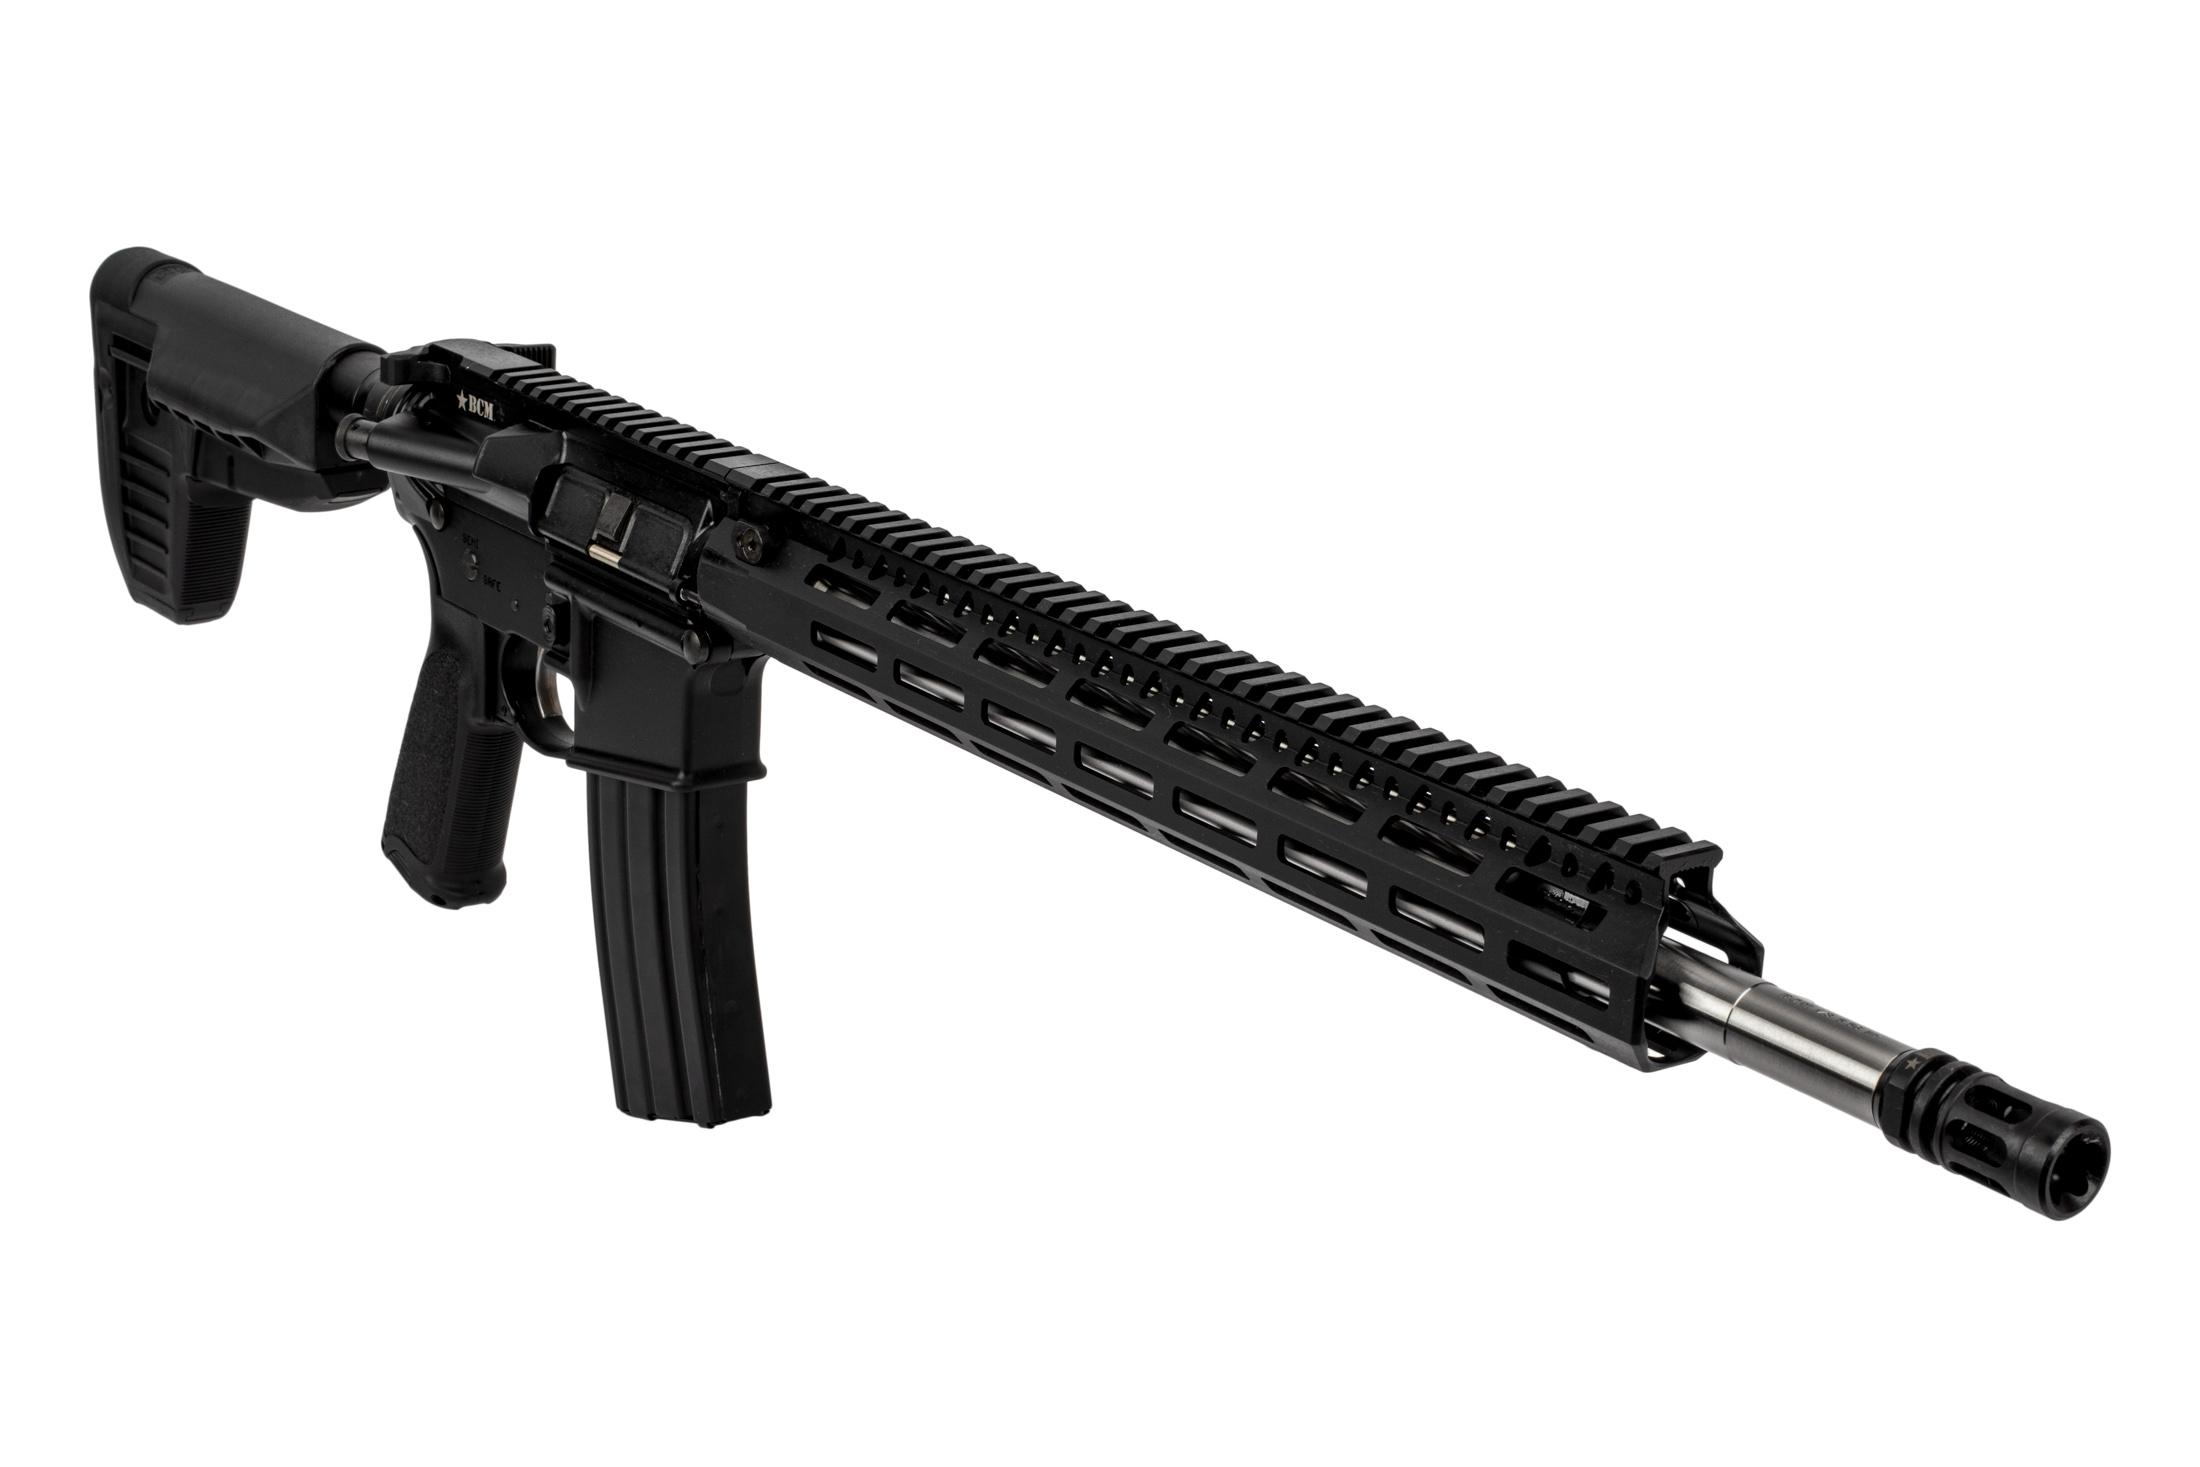 BCM RECCE-18 Precision rifle features the MCMR free float M-LOK handguard